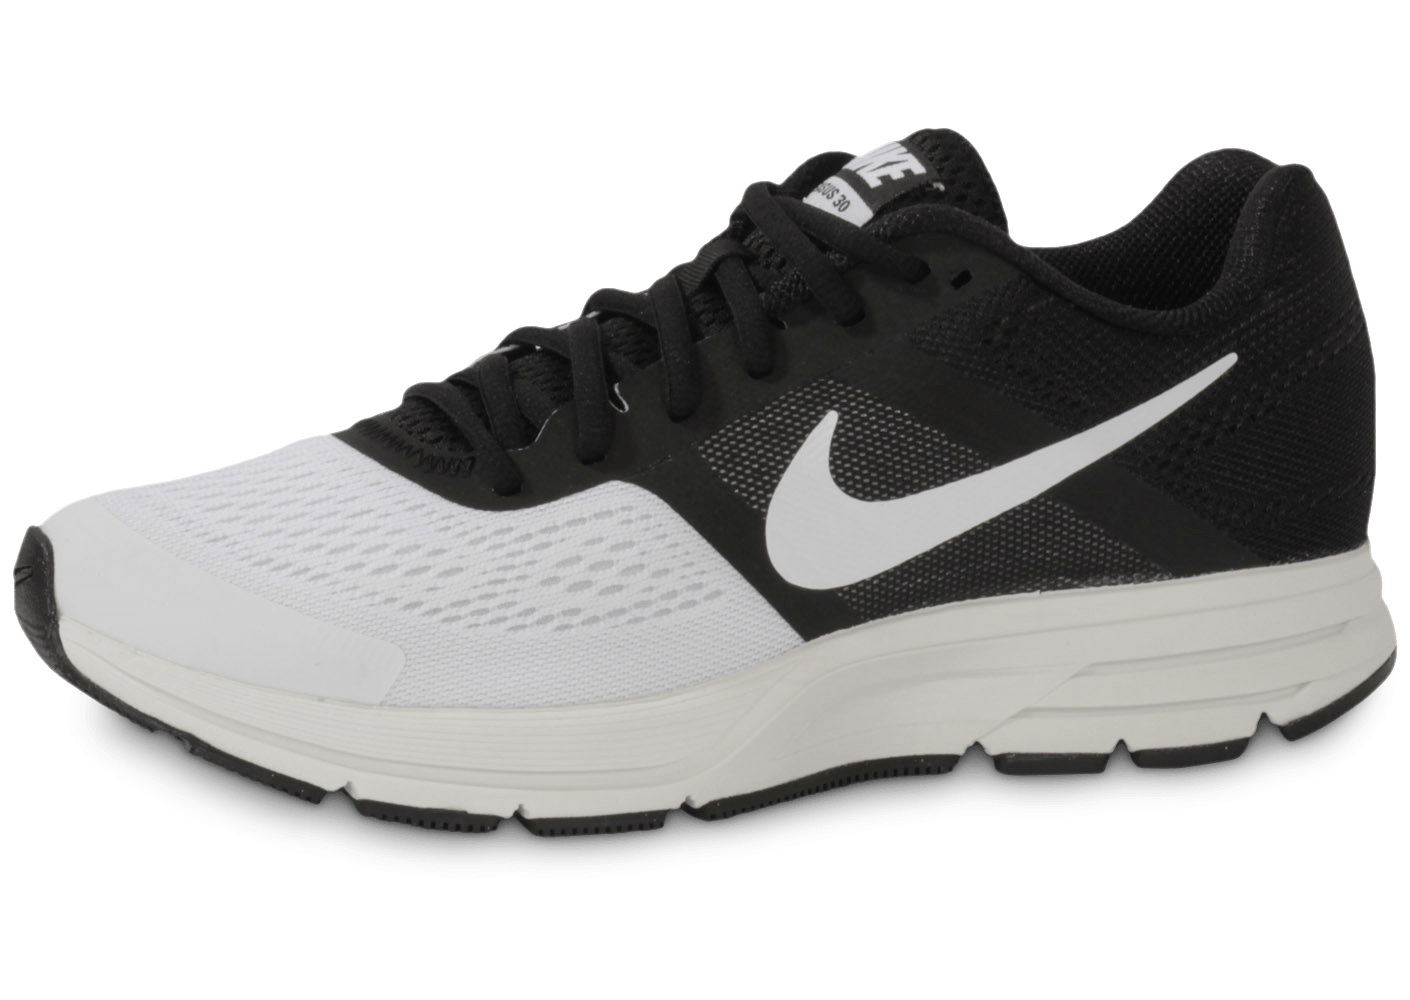 low priced a800f d7c27 Nike Pegasus+ 30 Noir Blanc - Chaussures Baskets homme - Chausport